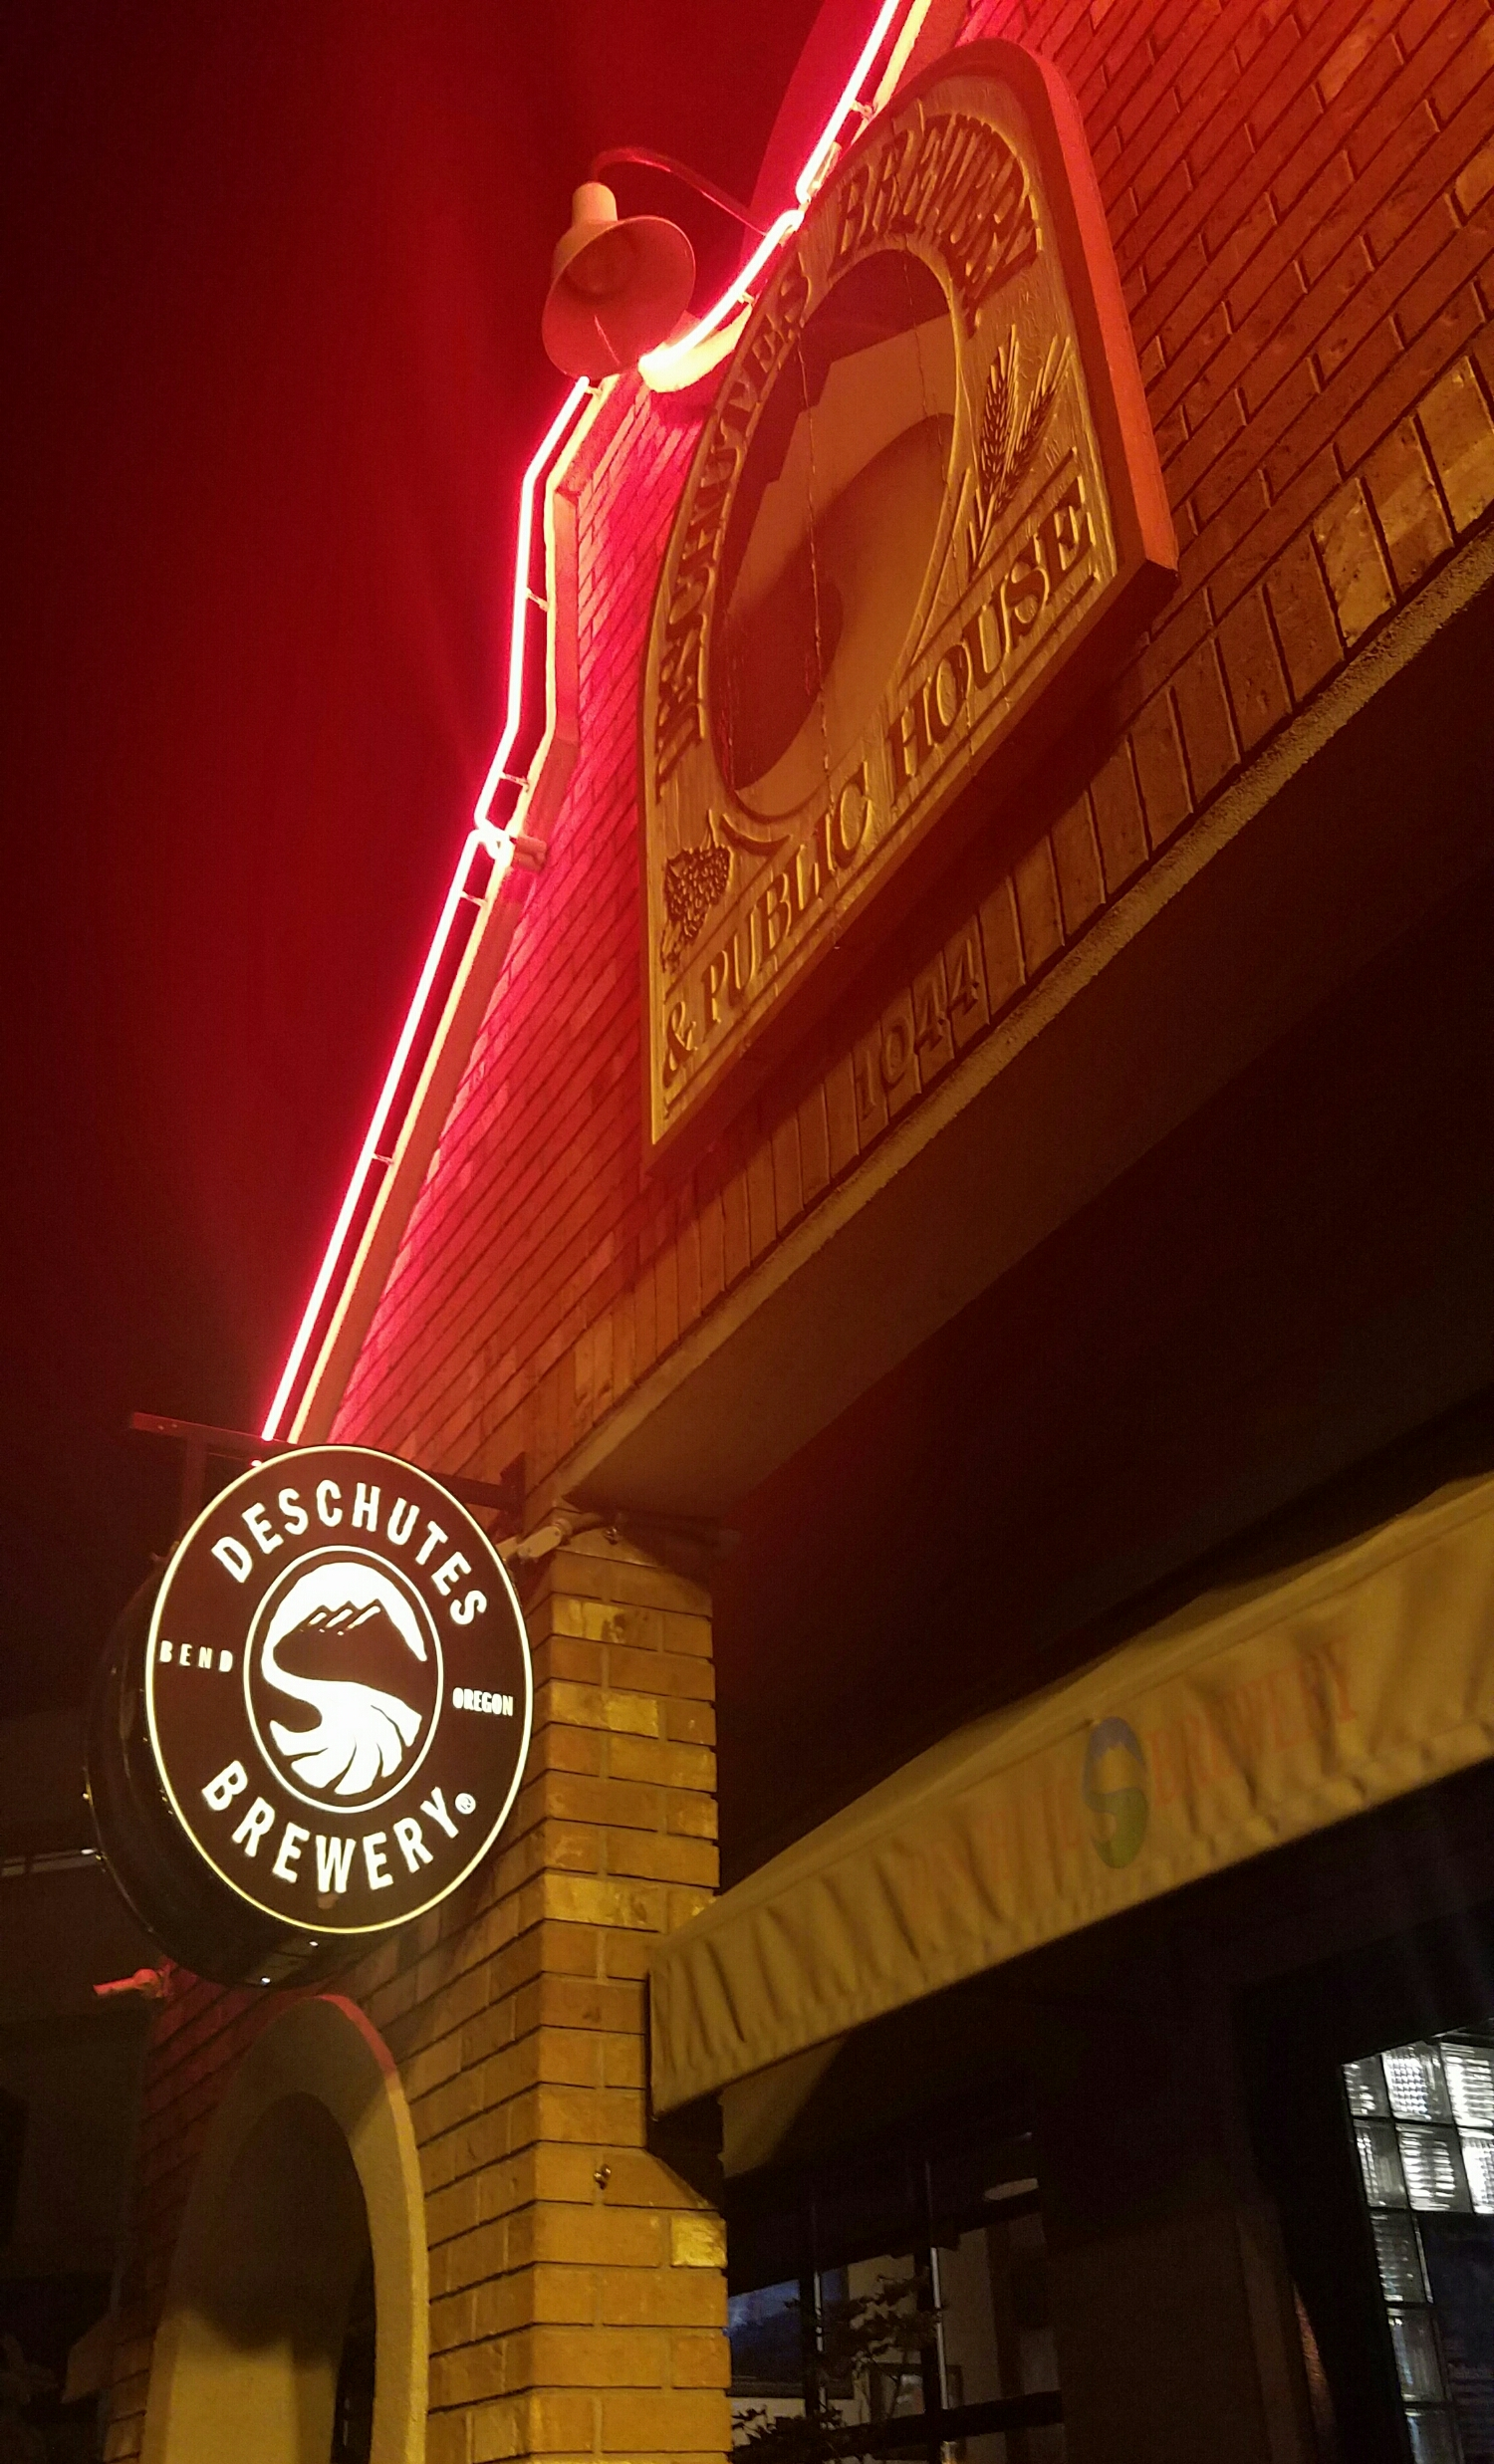 one of the most famous, Deschutes Brewery